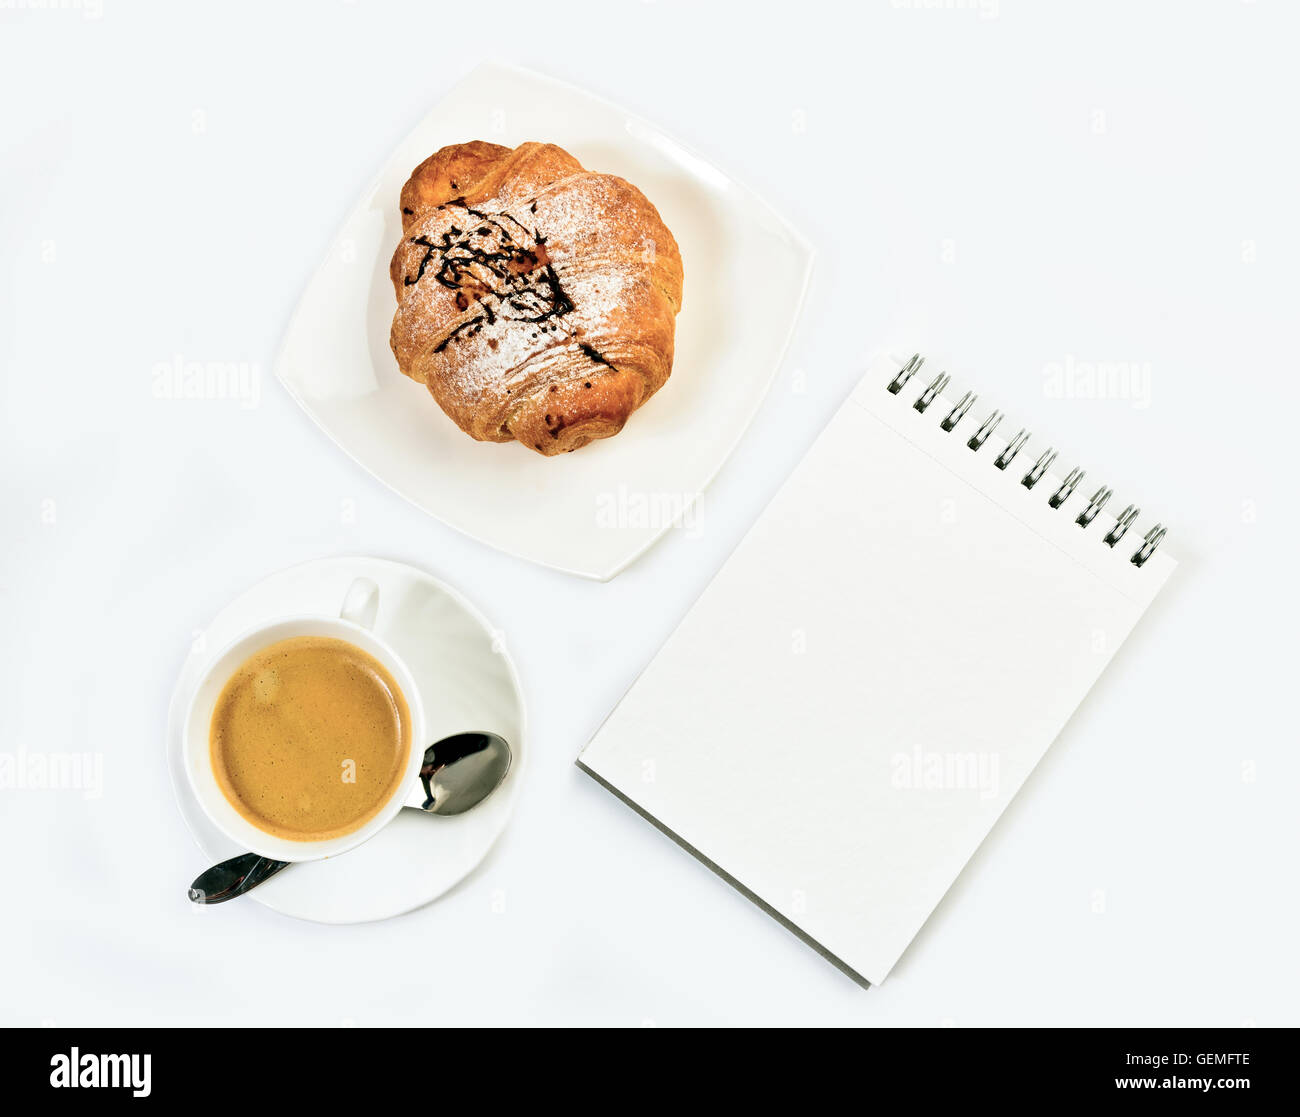 Fresh croissant, notepad  and coffee on white background. Top view. - Stock Image